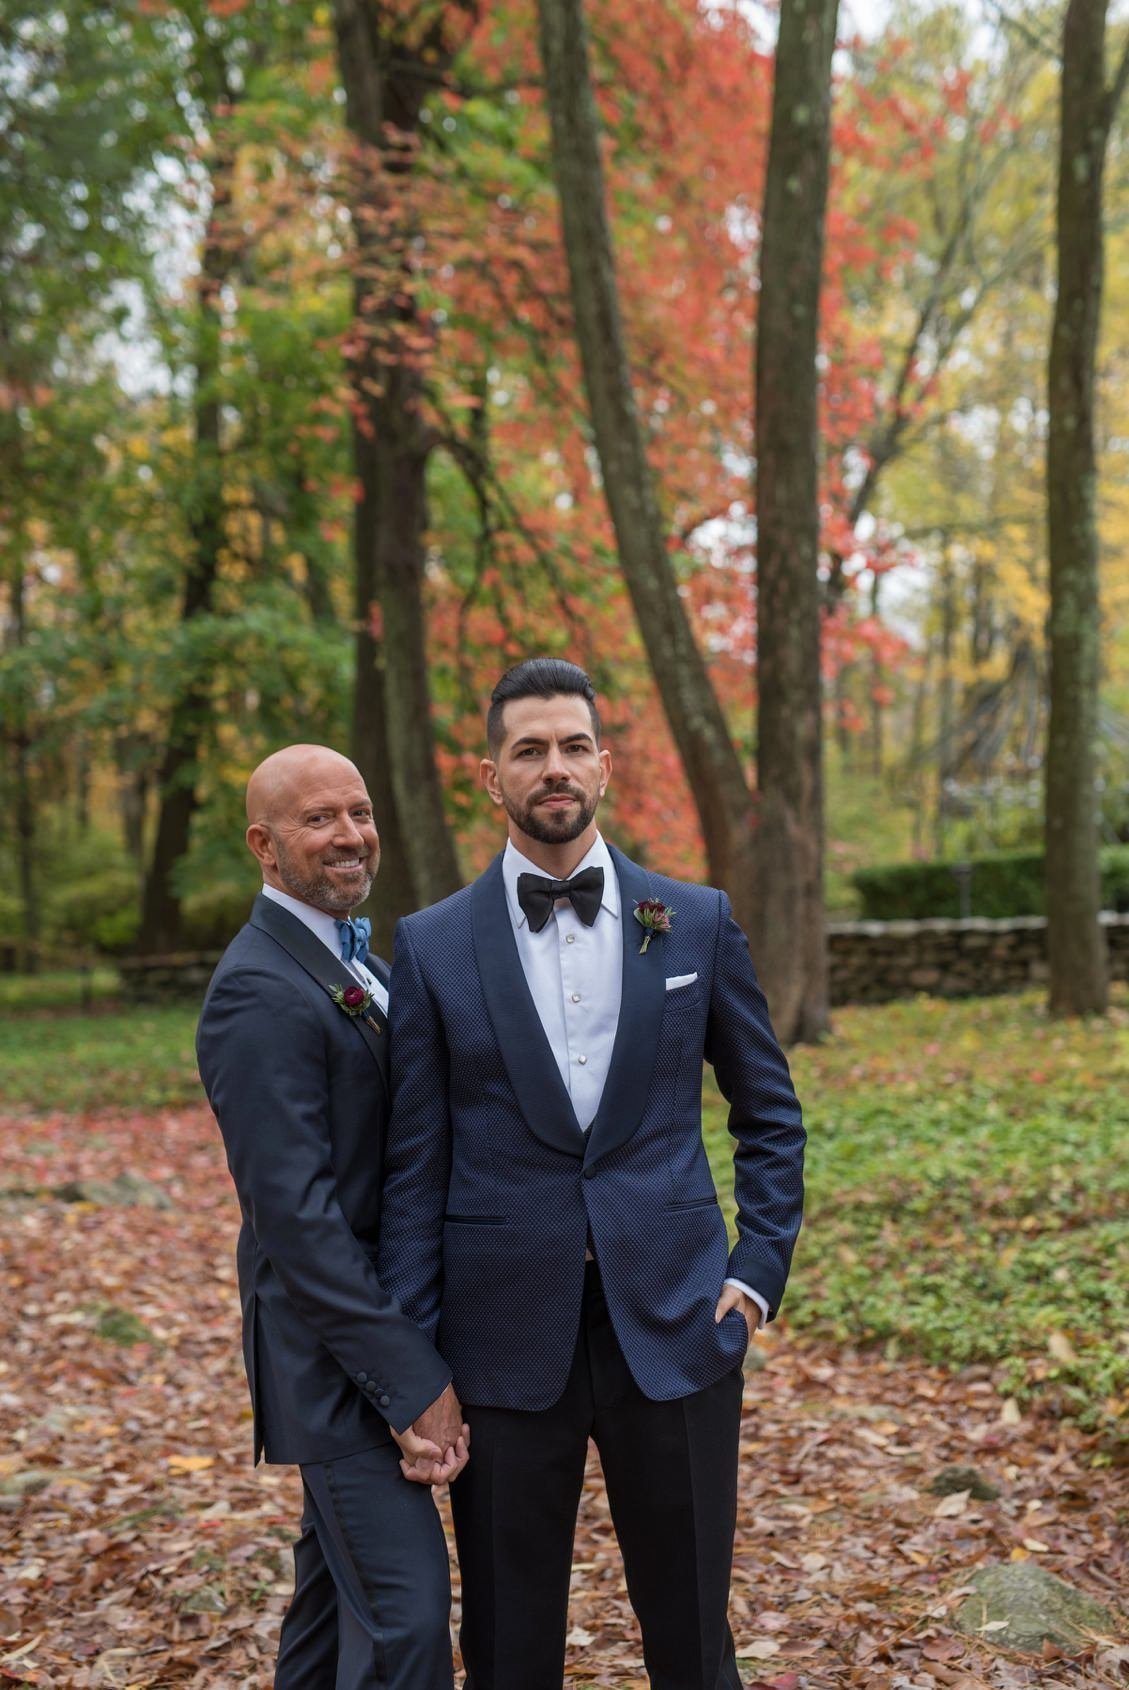 Brendan & Ryan celebrate their fall wedding at Lord Thompson Manor in CT.